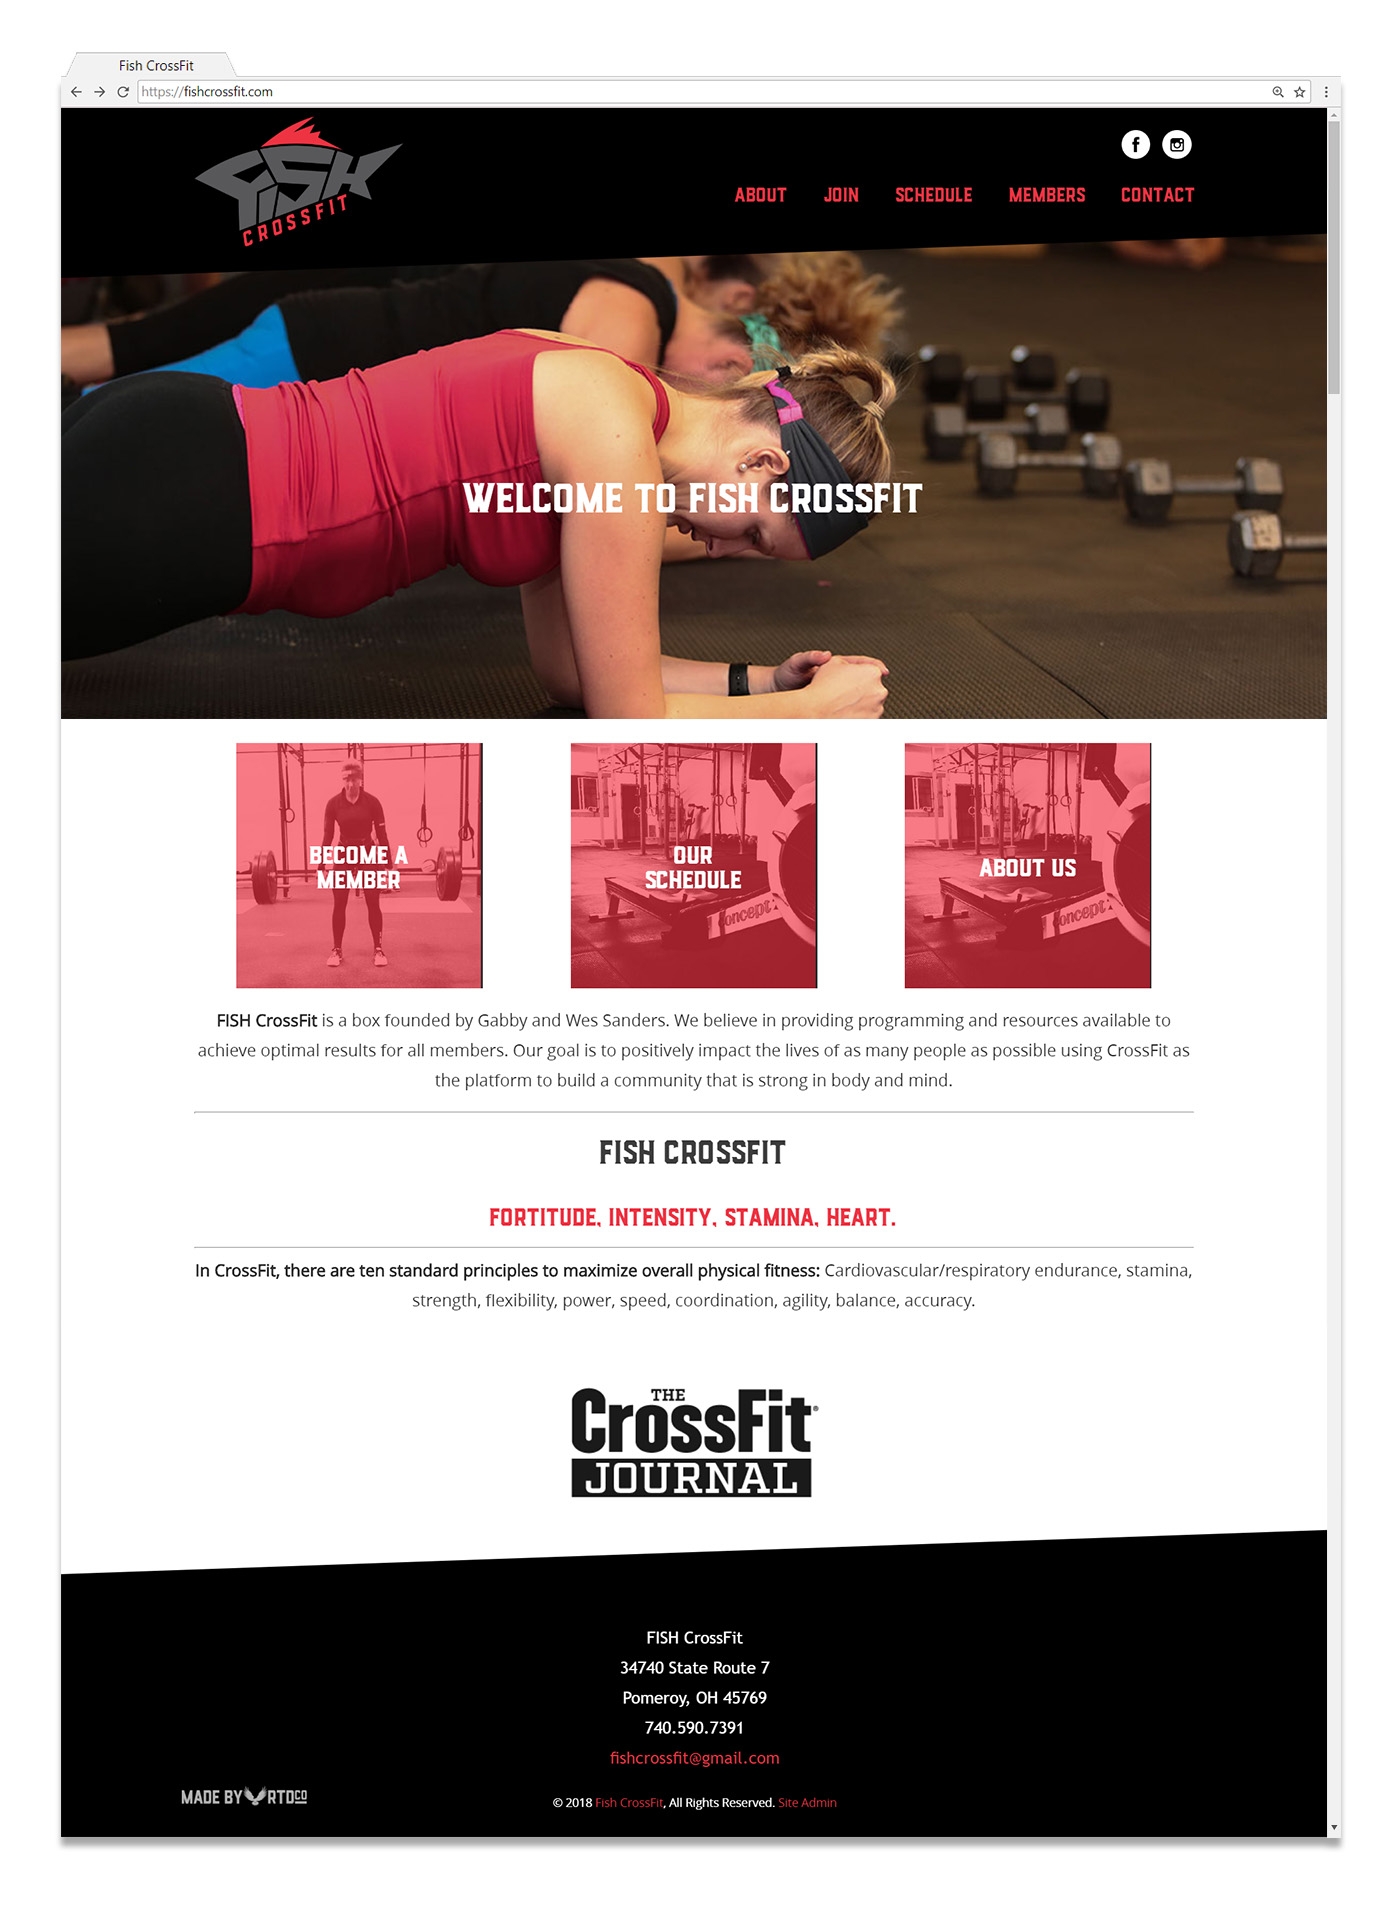 Fish Crossfit Box Pomeroy Ohio Web Design by Red Tail Design Co.